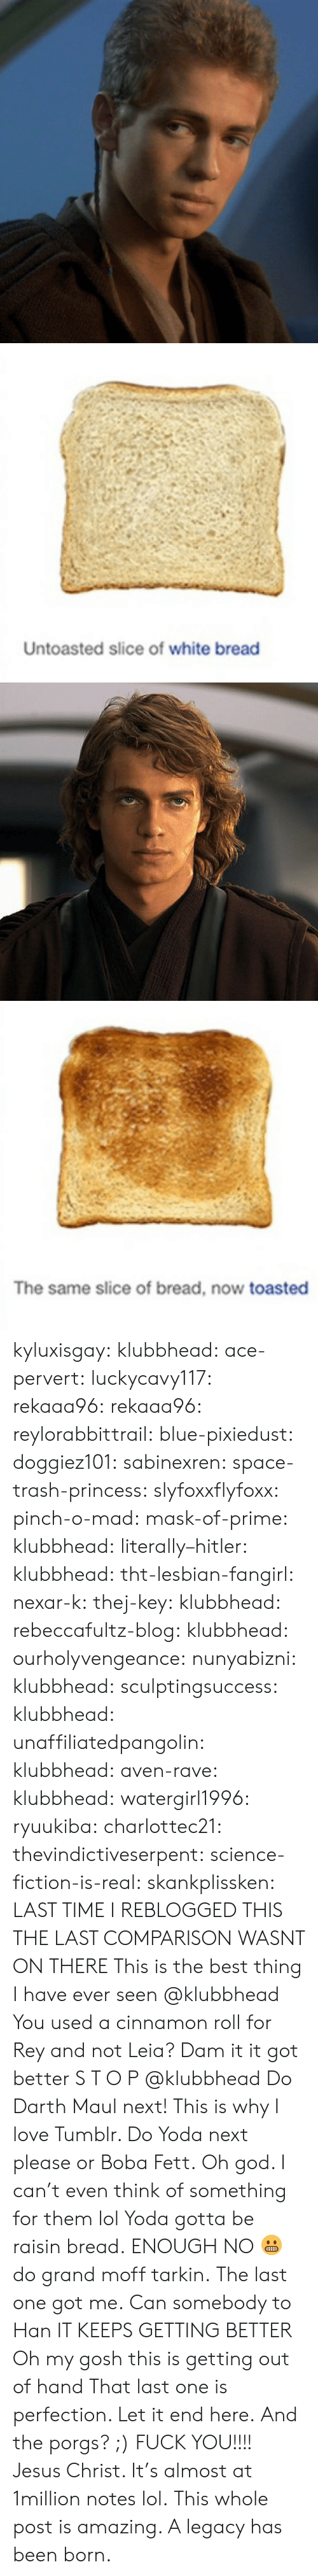 darth maul: Untoasted slice of white bread   The same slice of bread, now toasted kyluxisgay:  klubbhead:  ace-pervert:   luckycavy117:  rekaaa96:  rekaaa96:   reylorabbittrail:   blue-pixiedust:  doggiez101:  sabinexren:  space-trash-princess:   slyfoxxflyfoxx:  pinch-o-mad:  mask-of-prime:  klubbhead:  literally–hitler:  klubbhead:  tht-lesbian-fangirl:  nexar-k:  thej-key:  klubbhead:  rebeccafultz-blog:   klubbhead:  ourholyvengeance:  nunyabizni:  klubbhead:  sculptingsuccess:  klubbhead:   unaffiliatedpangolin:  klubbhead:  aven-rave:  klubbhead:   watergirl1996:  ryuukiba:  charlottec21:  thevindictiveserpent:  science-fiction-is-real:  skankplissken:                   LAST TIME I REBLOGGED THIS THE LAST COMPARISON WASNT ON THERE    This is the best thing I have ever seen   @klubbhead You used a cinnamon roll for Rey and not Leia?    Dam it it got better   S T O P  @klubbhead Do Darth Maul next!   This is why I love Tumblr. Do Yoda next please or Boba Fett.   Oh god. I can't even think of something for them lol  Yoda gotta be raisin bread.   ENOUGH   NO 😬 do grand moff tarkin.     The last one got me.   Can somebody to Han     IT KEEPS GETTING BETTER   Oh my gosh this is getting out of hand      That last one is perfection.  Let it end here.   And the porgs? ;)      FUCK YOU!!!!   Jesus Christ. It's almost at 1million notes lol.   This whole post is amazing. A legacy has been born.